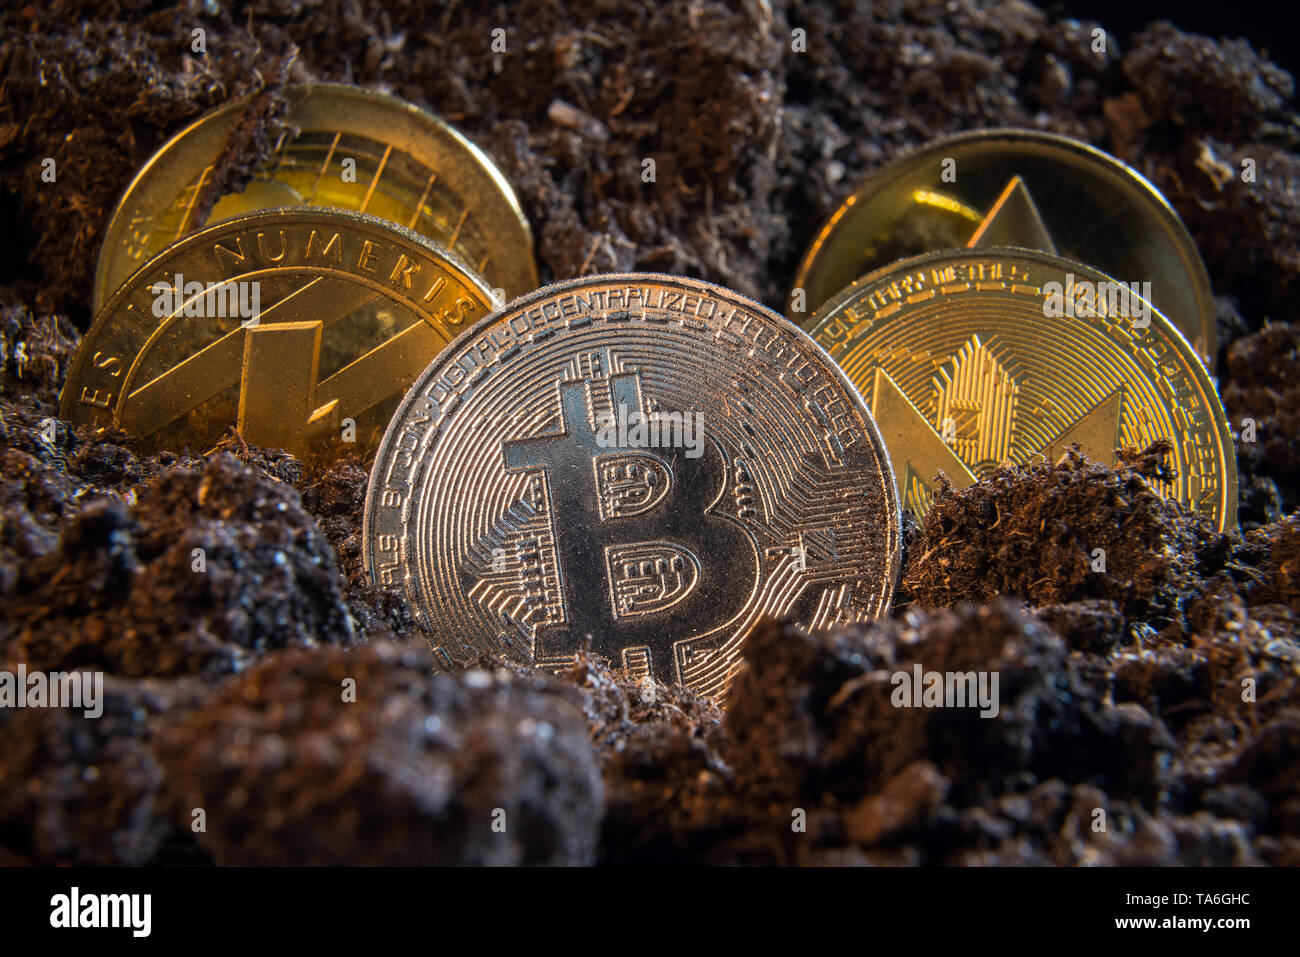 Silver bitcoin crypto currency coin in the dirt ground with others in the back: Litecoin, Ripple, Monerd, Ethereum coin. Digital currency, block chain - Stock Image